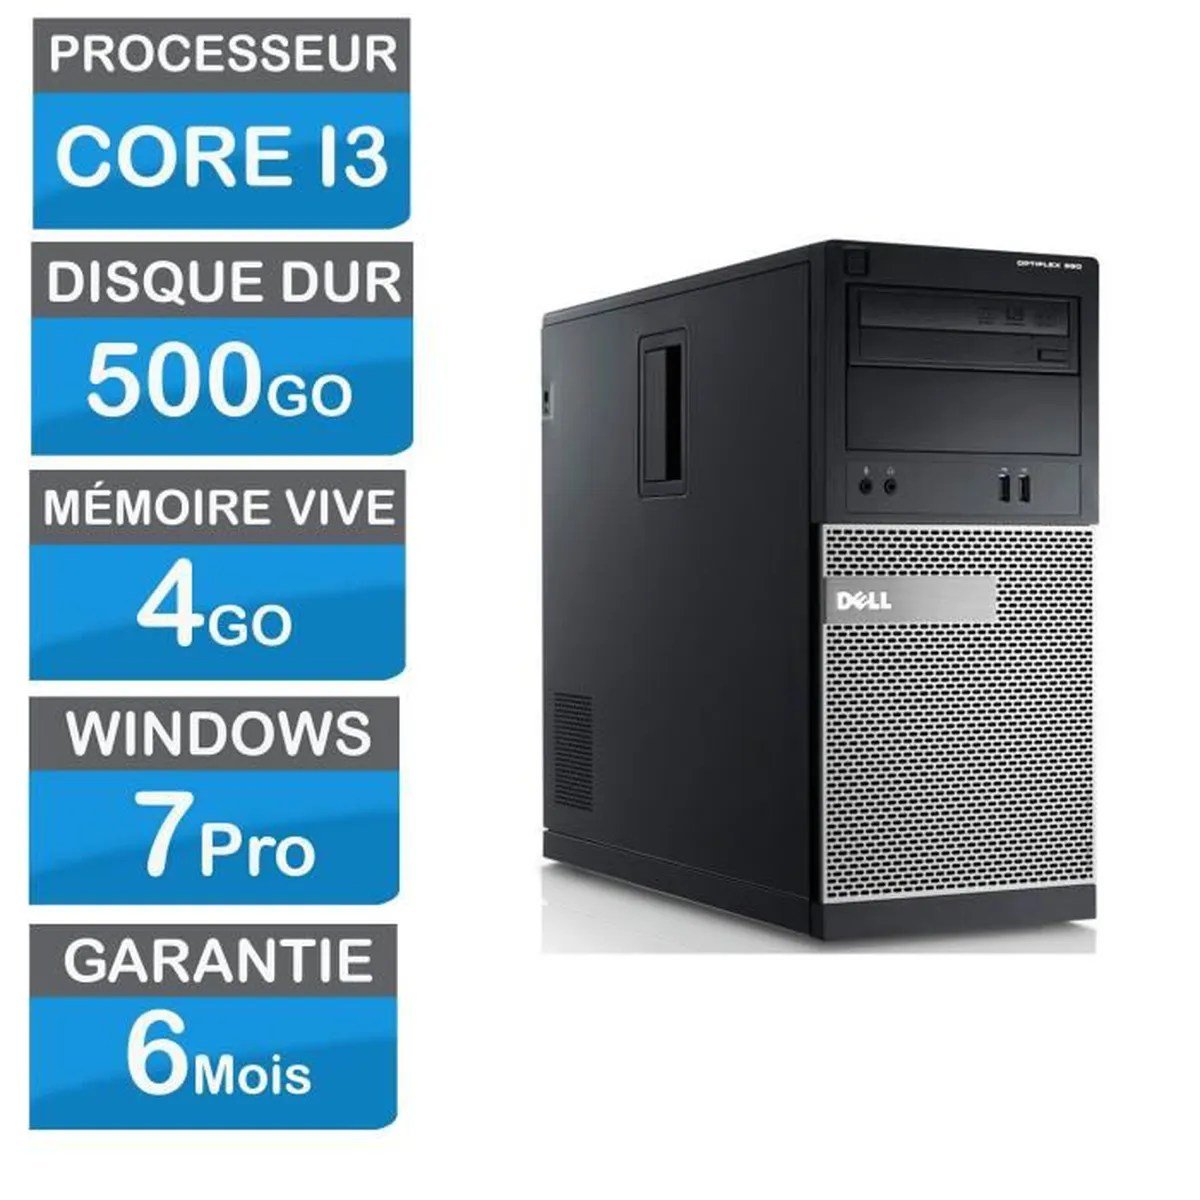 Bureau Pc Fixe Pc Fixe Dell Optiplex 390 Corei3 3 40 Ghz 4go Ram 500go Hdd Win7